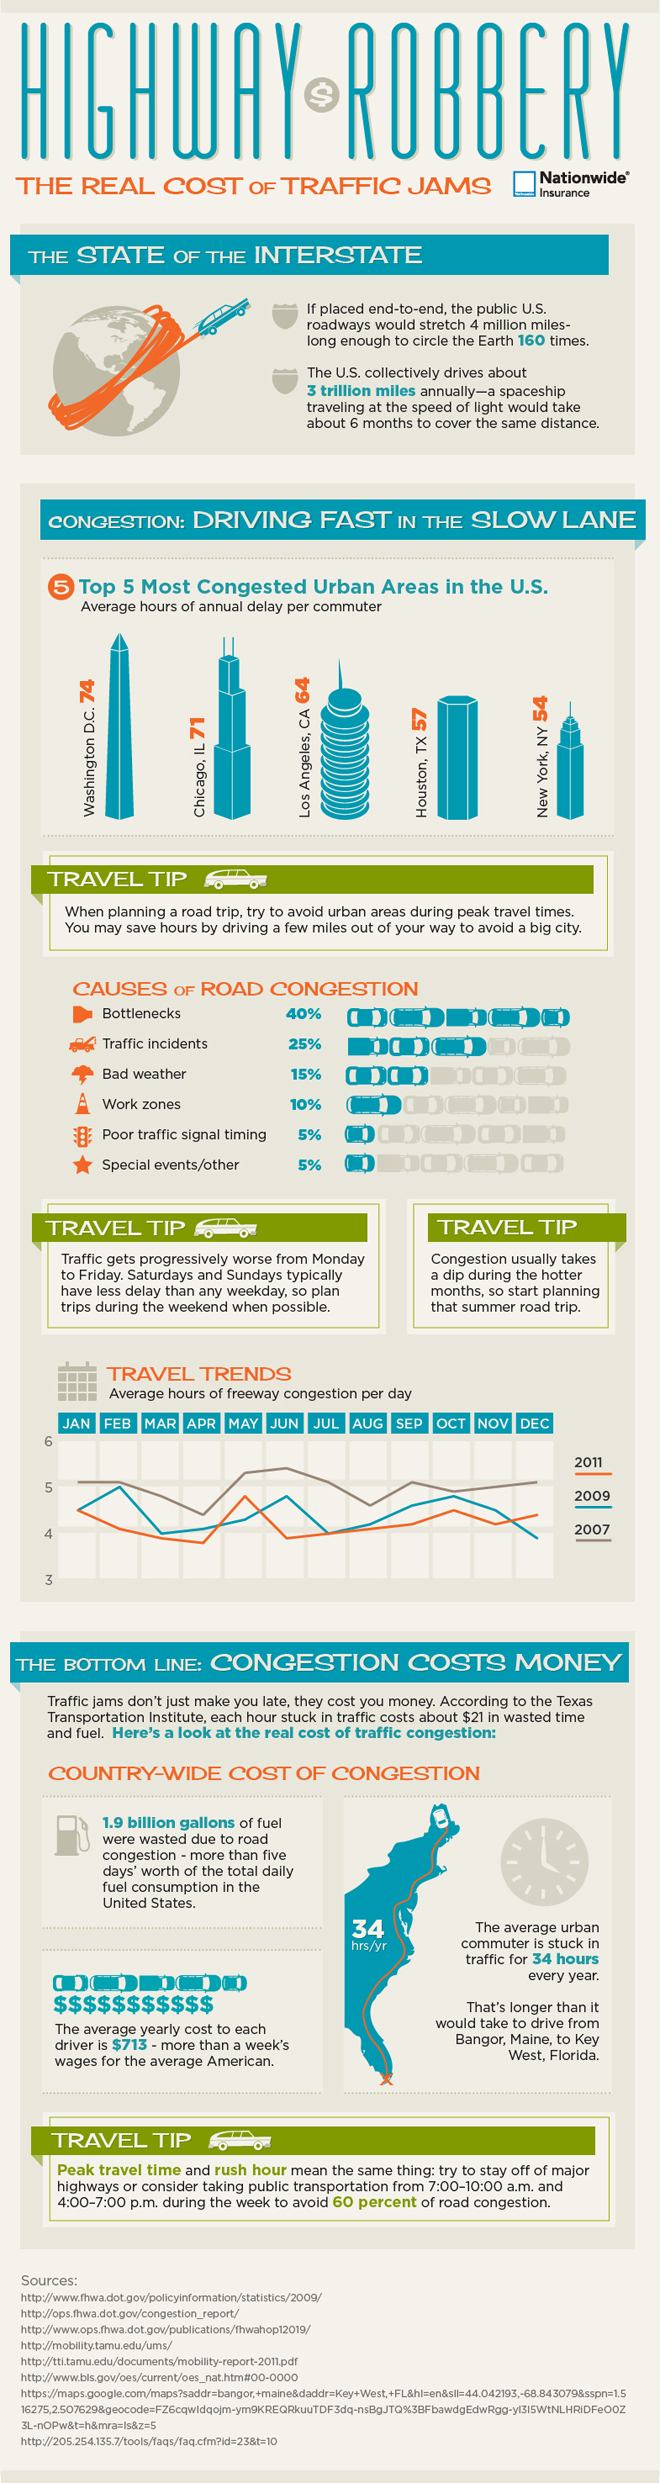 The Cost of Road Congestion